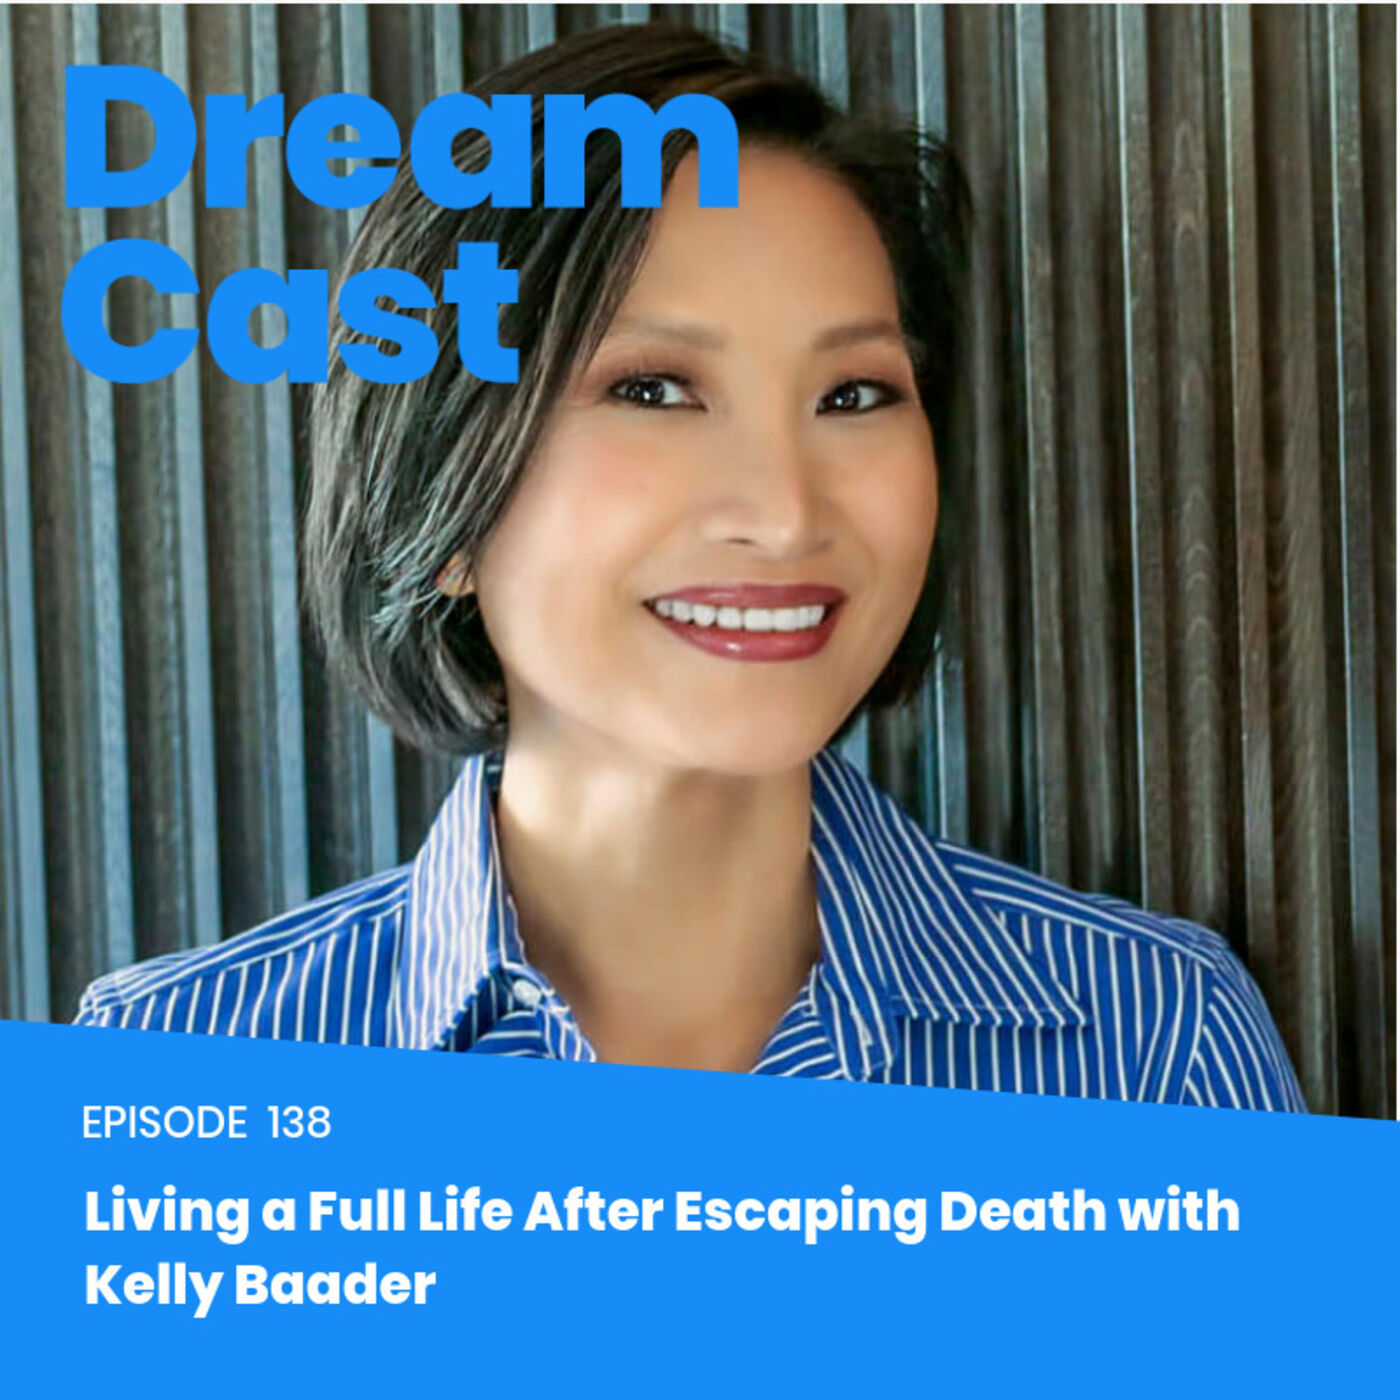 Episode 140 – Living a Full Life After Escaping Death with Kelly Baader